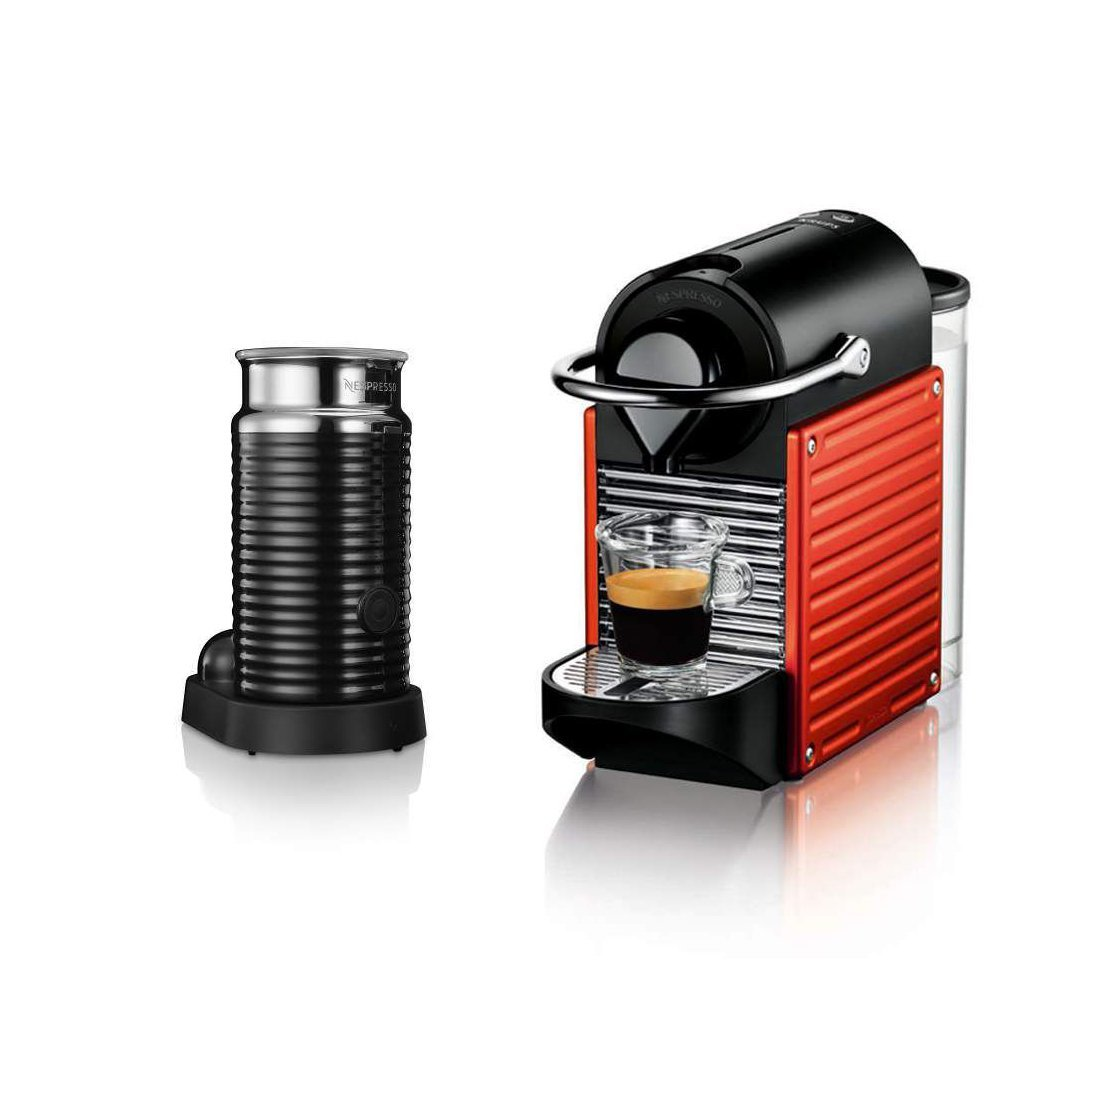 Krups xn301540 nespresso 19 bar pixie red coffee machine ebay - Machine a cafe krups nespresso ...